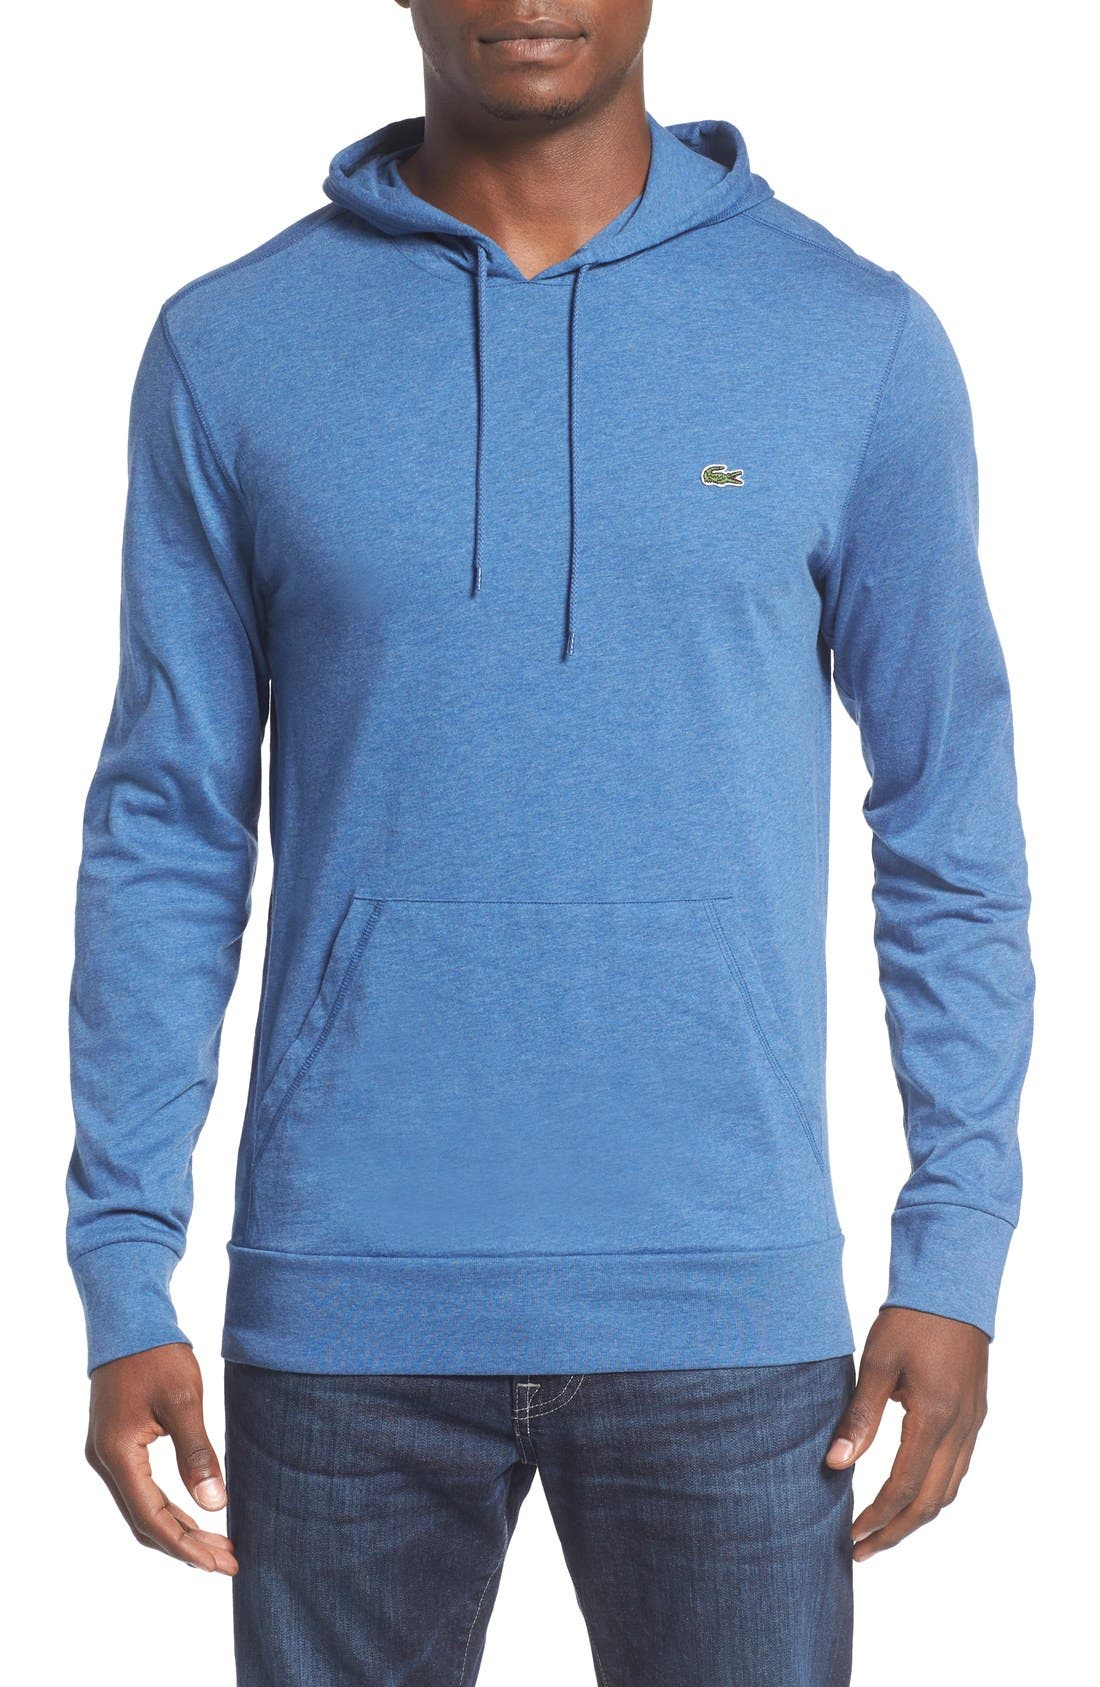 Alternate Image 1 Selected - Lacoste Jersey Hoodie